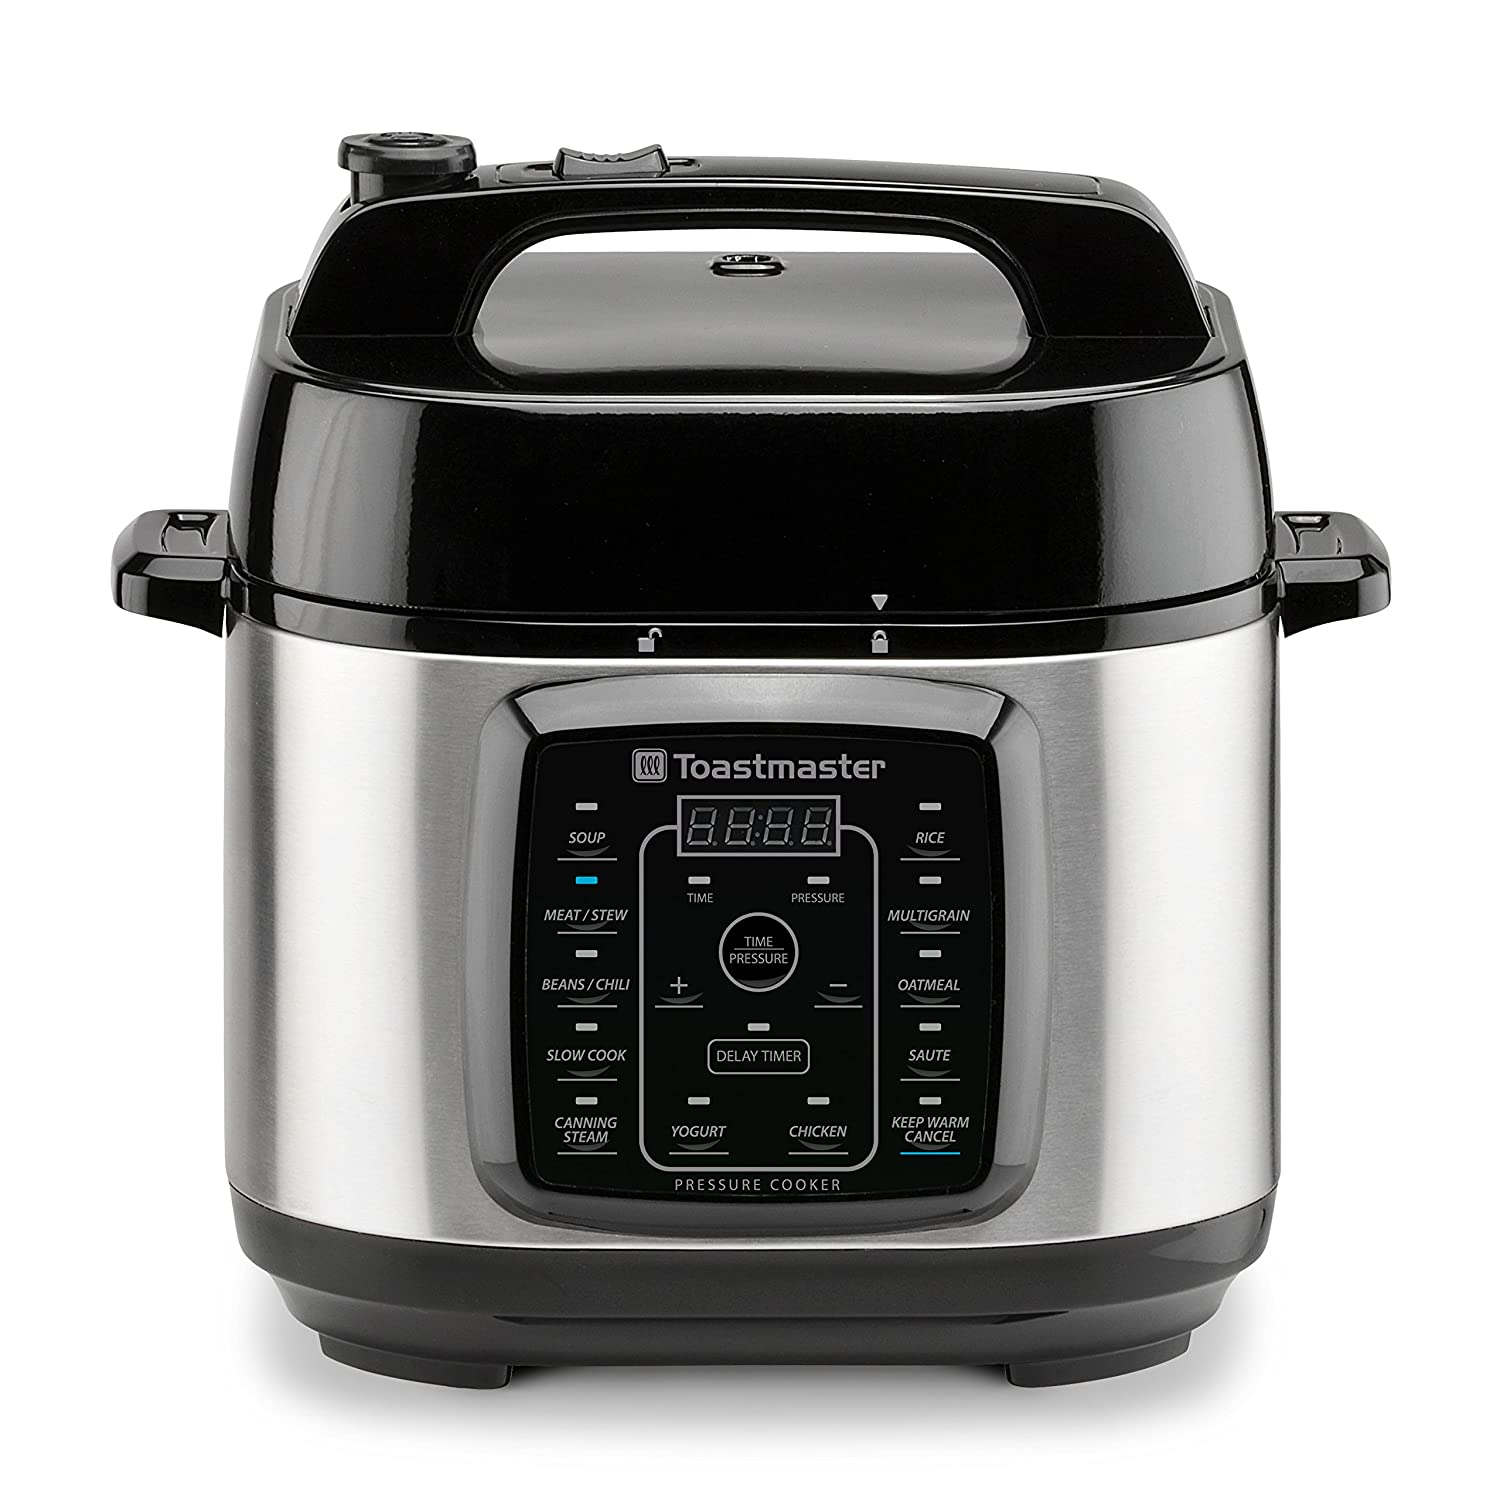 Toastmaster TM-670PC Electric Pressure Cooker 6 Quart Stainless Steel